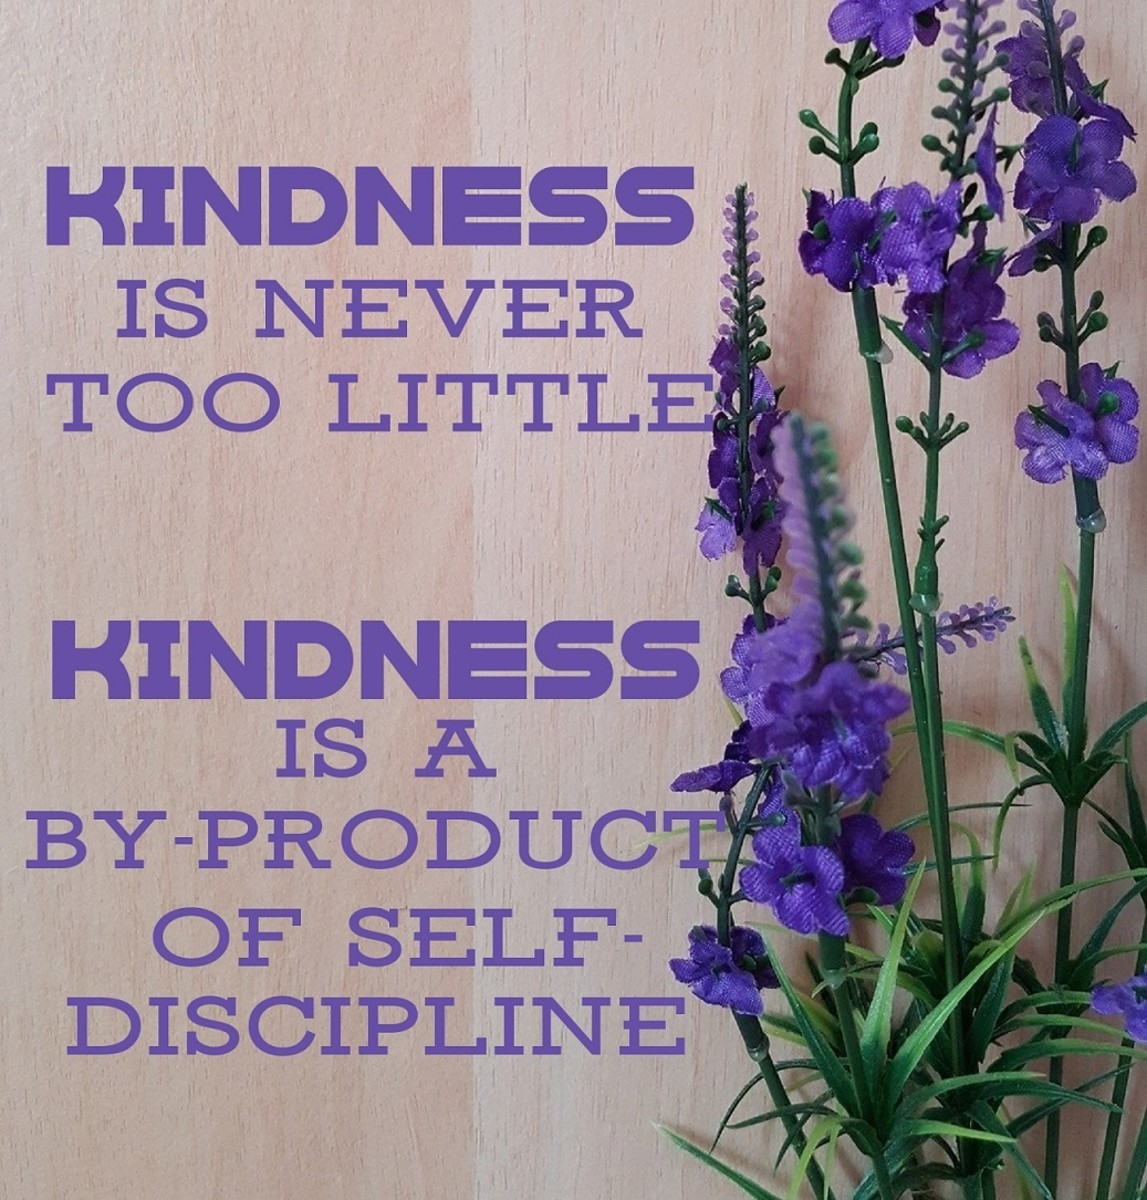 Kindness is never too little ... a by-product of self-discipline